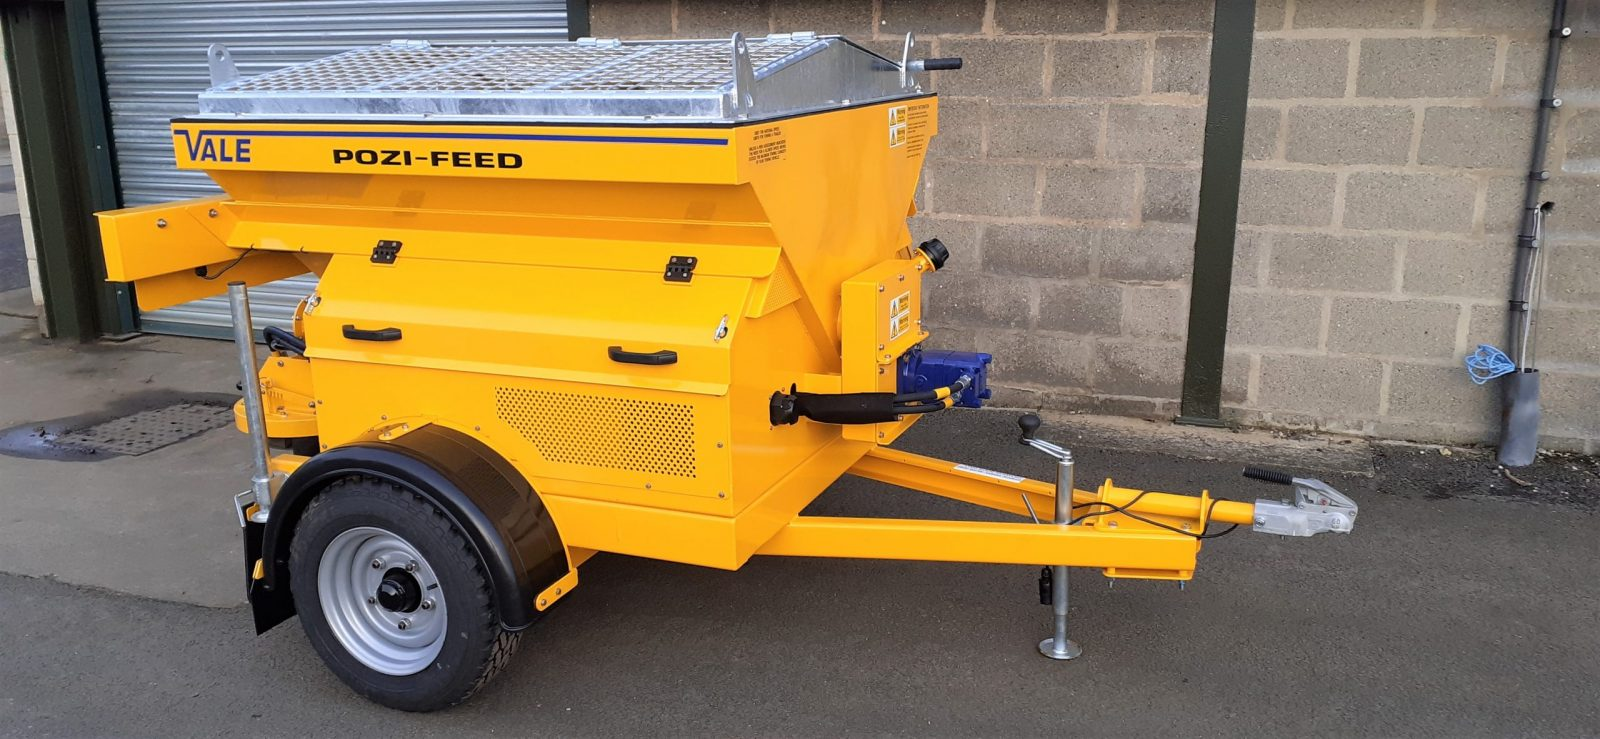 The TS800DC Tug-Towed Salt Spreader (Gritter) requires minimal servicing as it features a very simple and easy-to-maintain chassis design, with enclosed engine and hydraulic system to reduce salt damage.